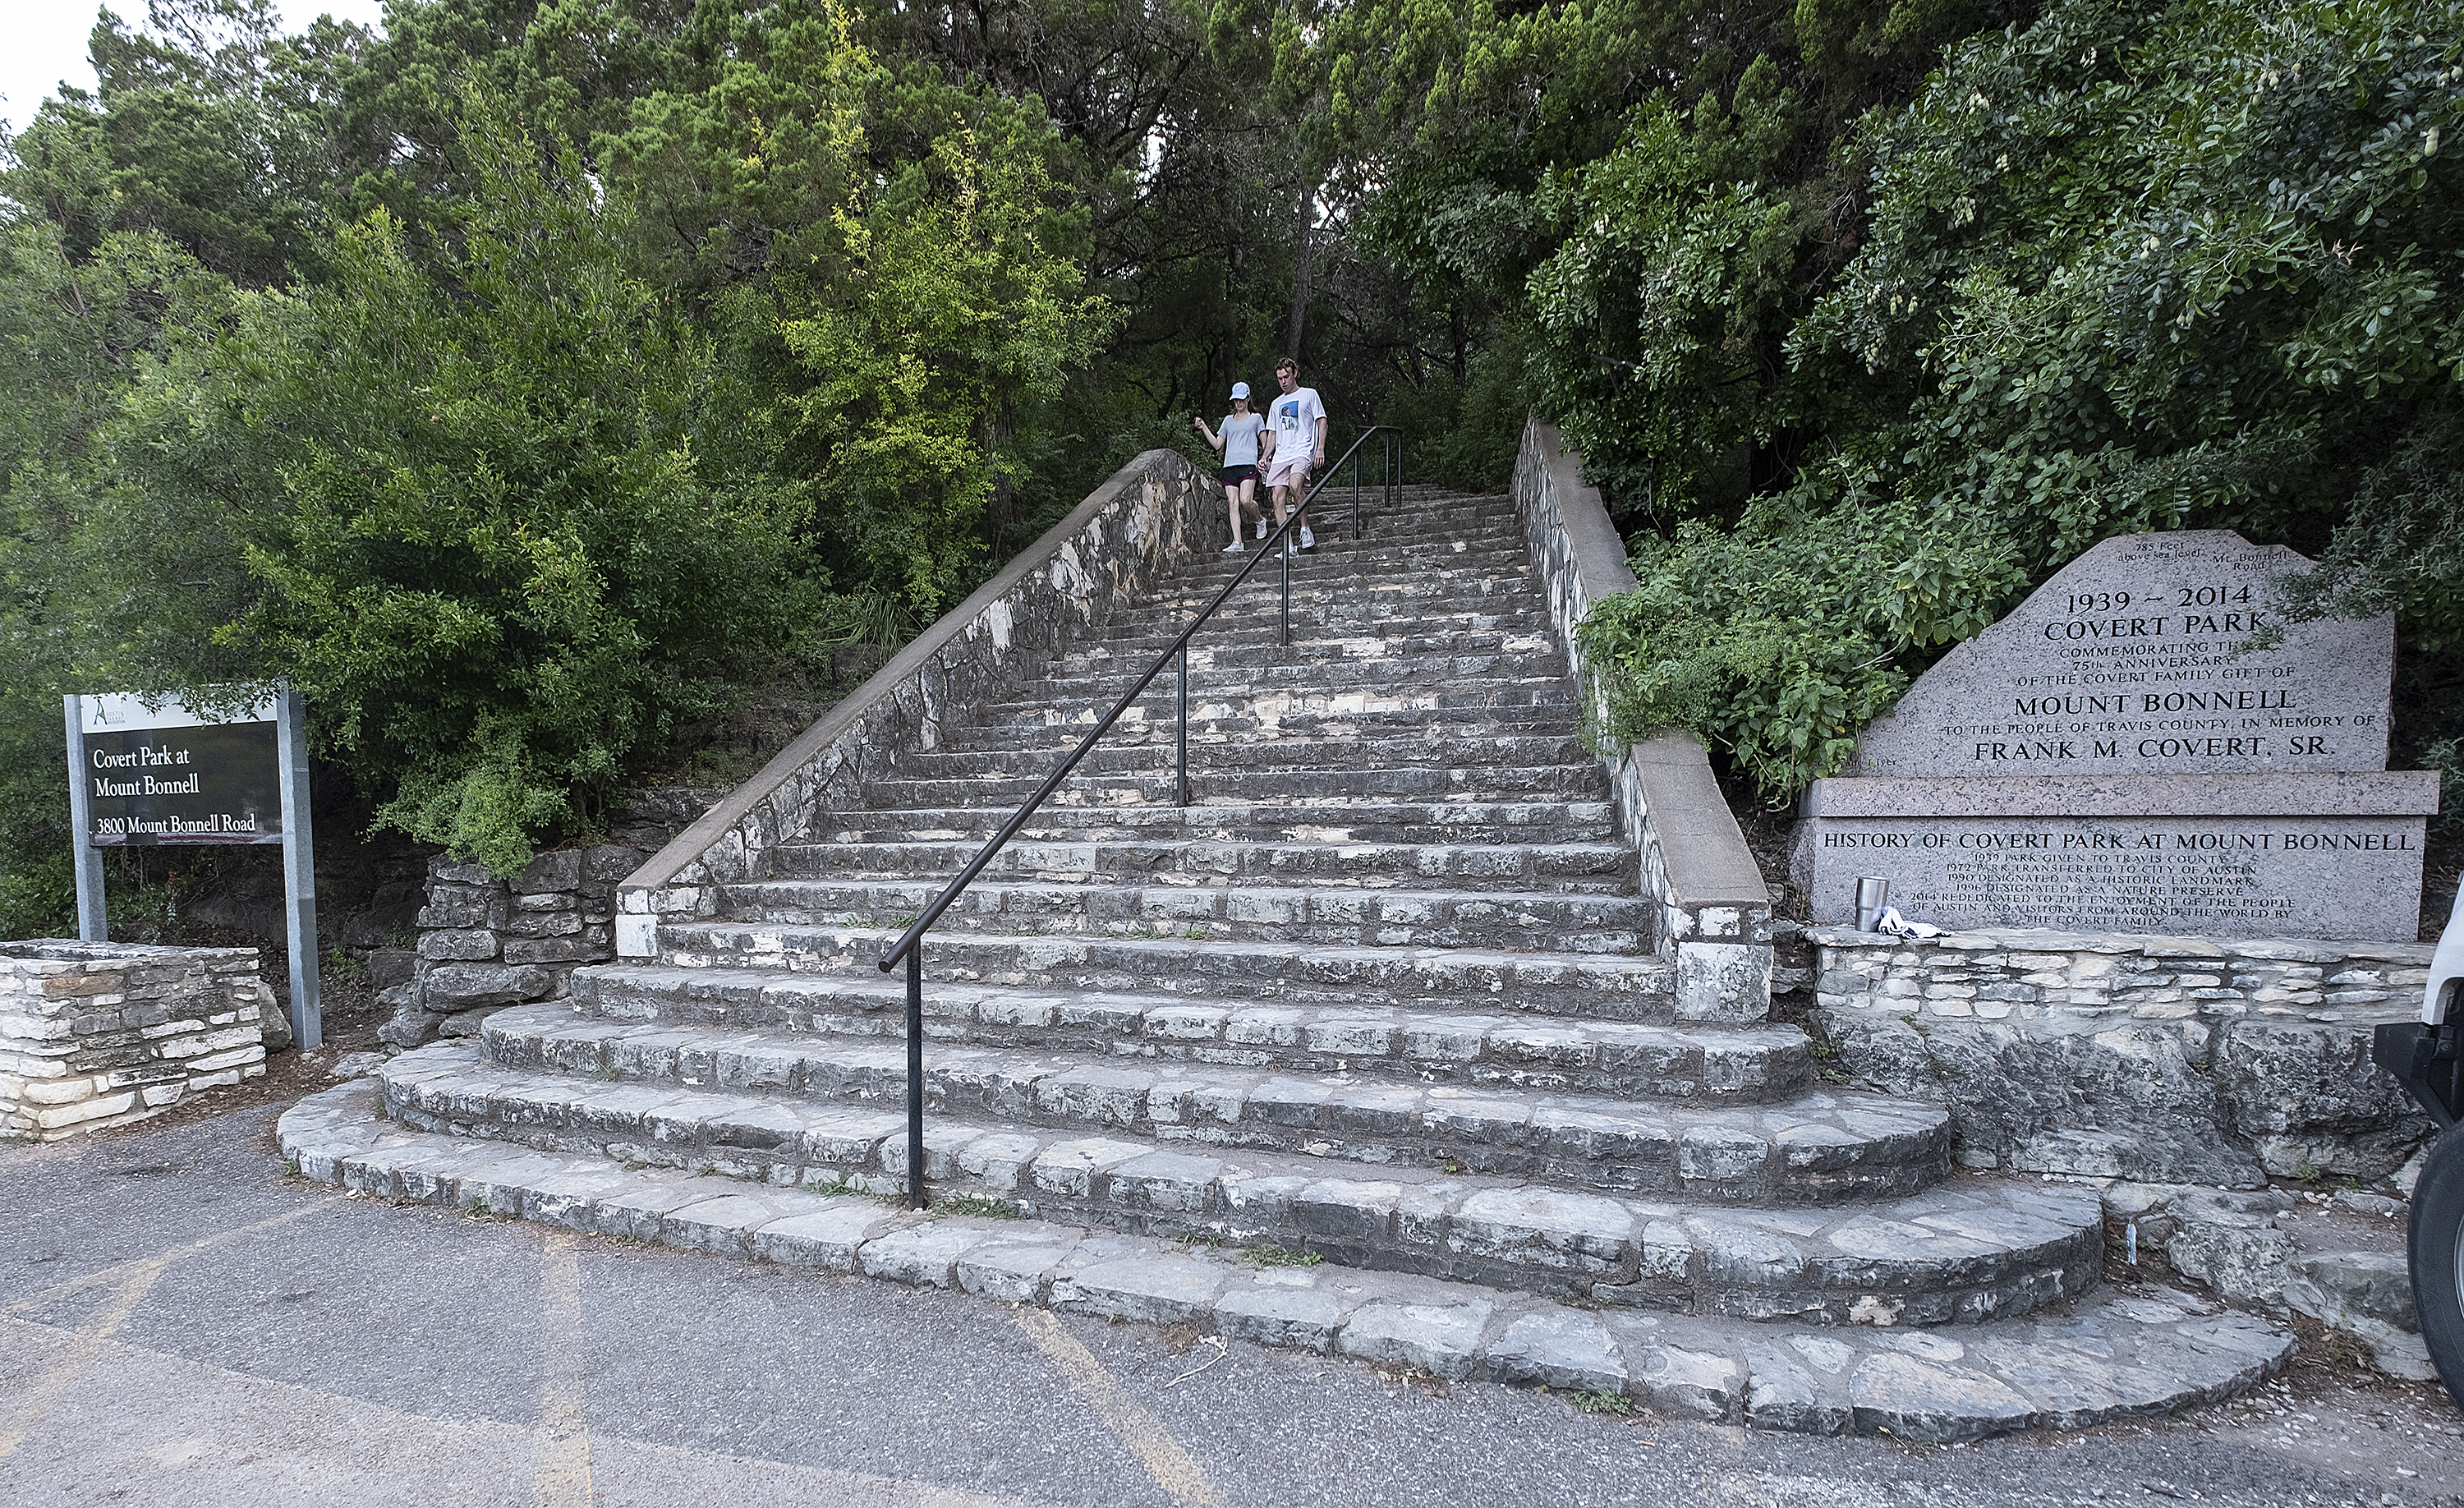 06-17-2019 -- A couple descends the steps at Mount Bonnell. Photo © Alberto Martinez